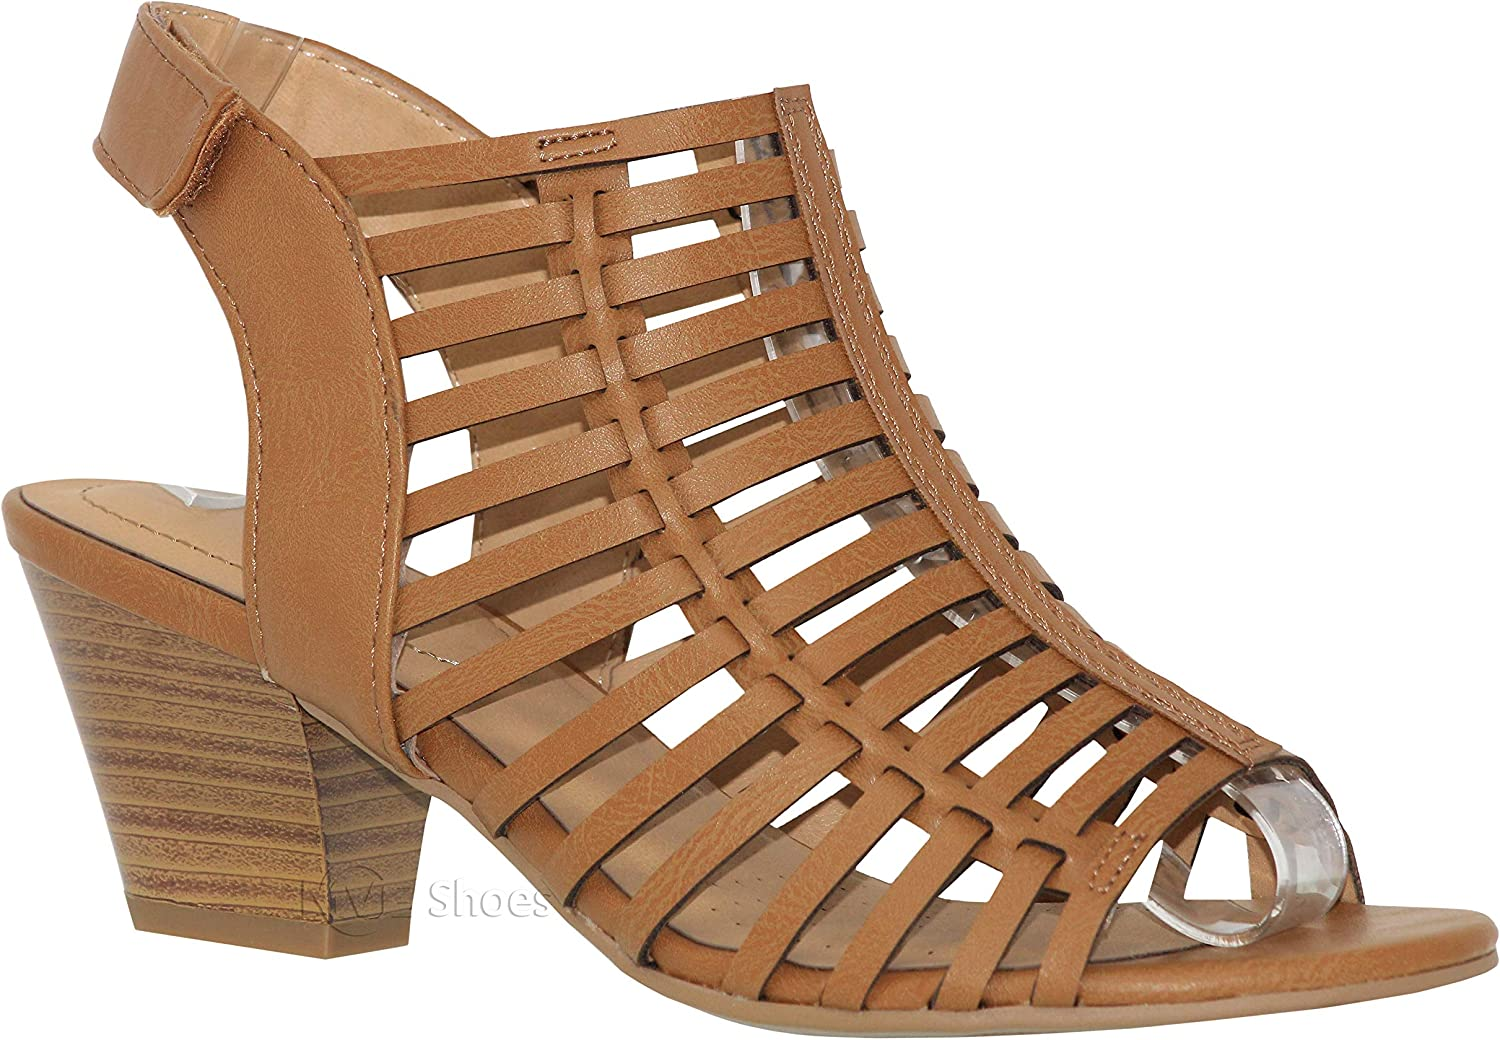 MVE shoes Women's Open Toe Perforate Laser Cut Chunky Heeled-Sandal